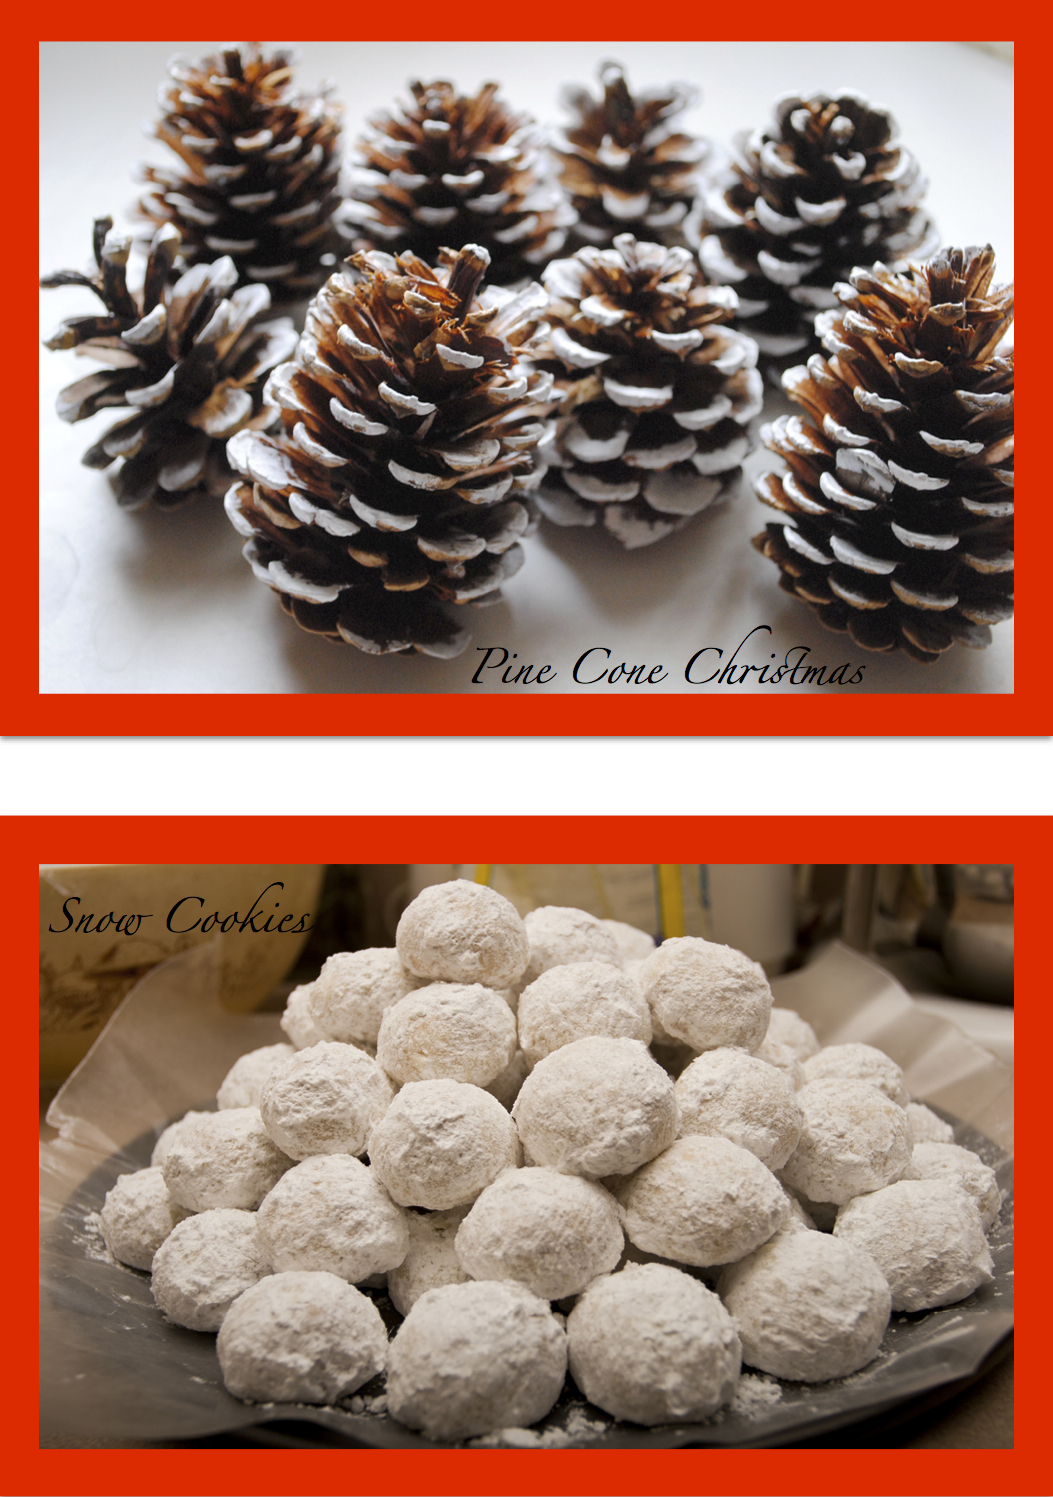 Old Fashioned Christmas Image 1